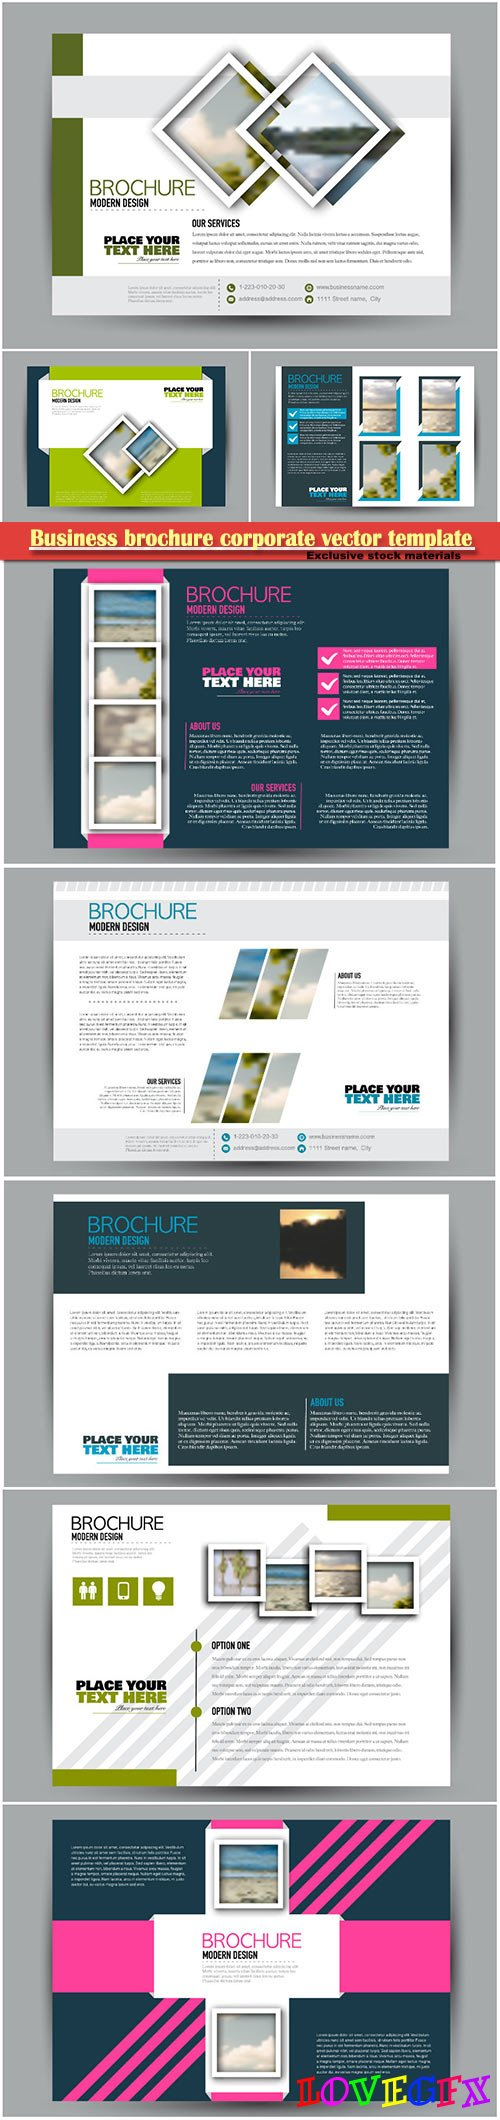 Business brochure corporate vector template, magazine flyer mockup # 15